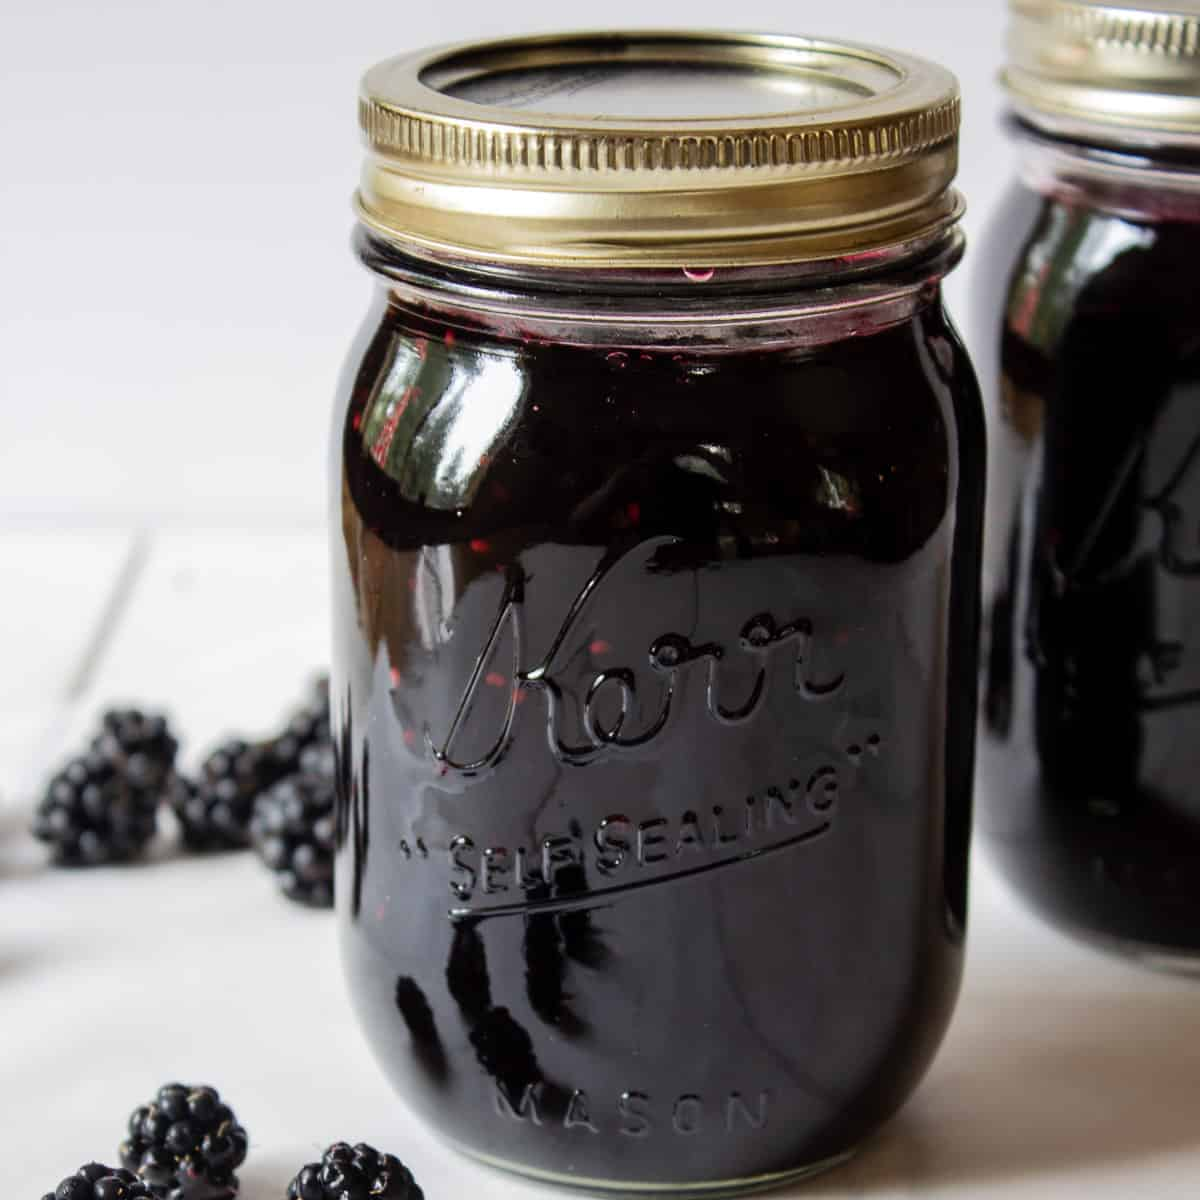 A glass canning jar filled with blackberry jam.